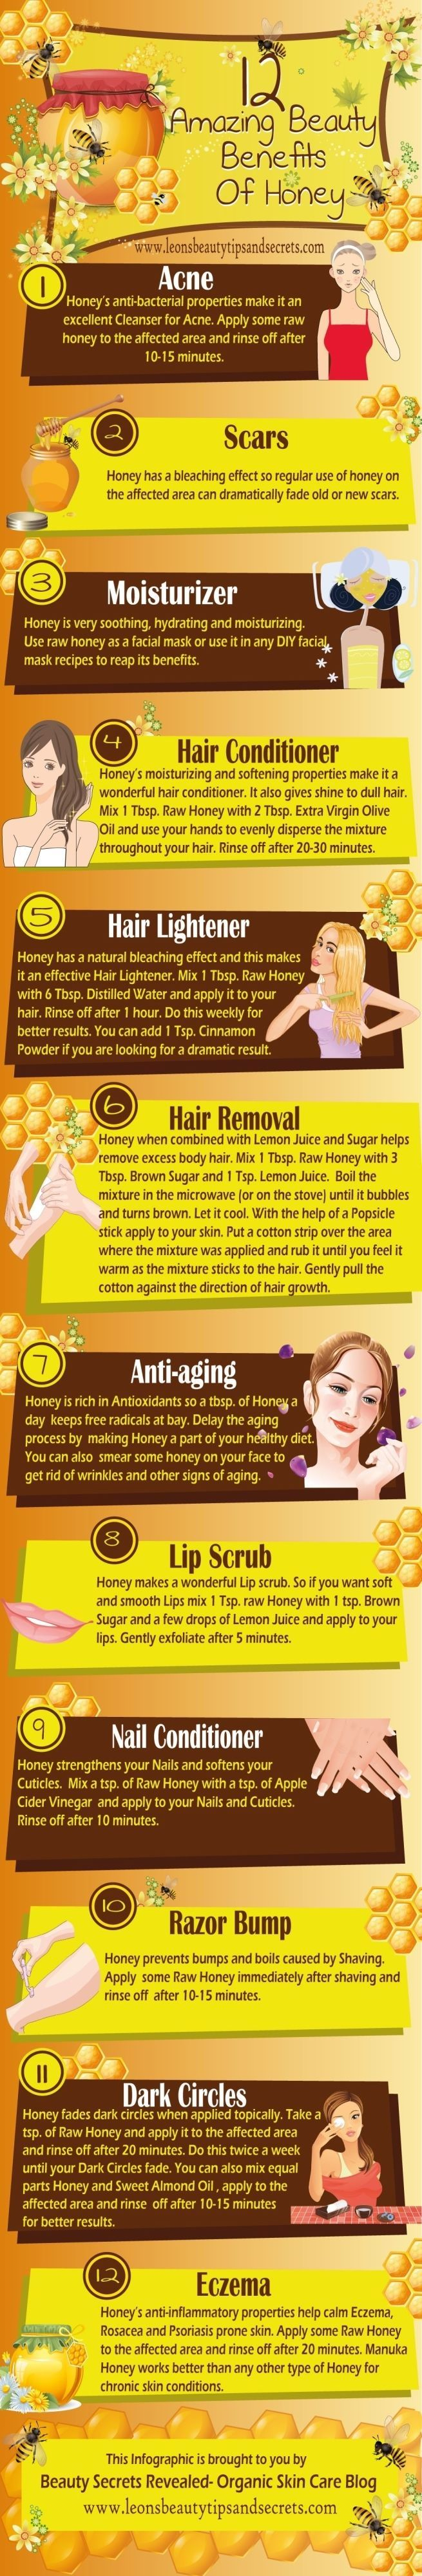 how to get rid of honey bees home remedies